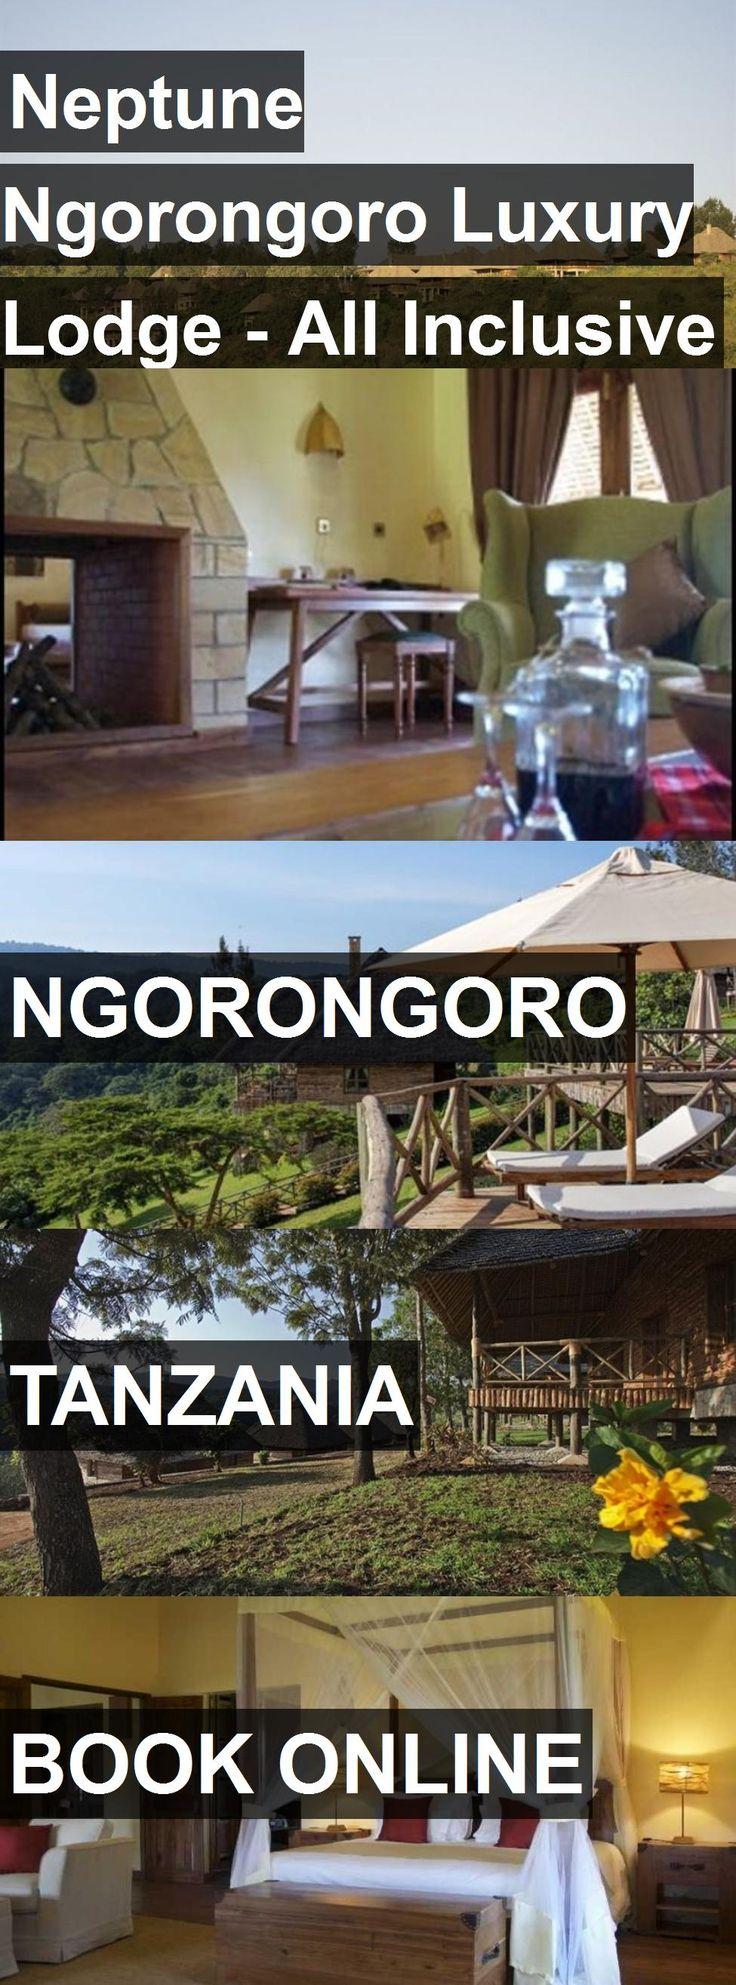 Hotel Neptune Ngorongoro Luxury Lodge - All Inclusive in Ngorongoro, Tanzania. For more information, photos, reviews and best prices please follow the link. #Tanzania #Ngorongoro #travel #vacation #hotel